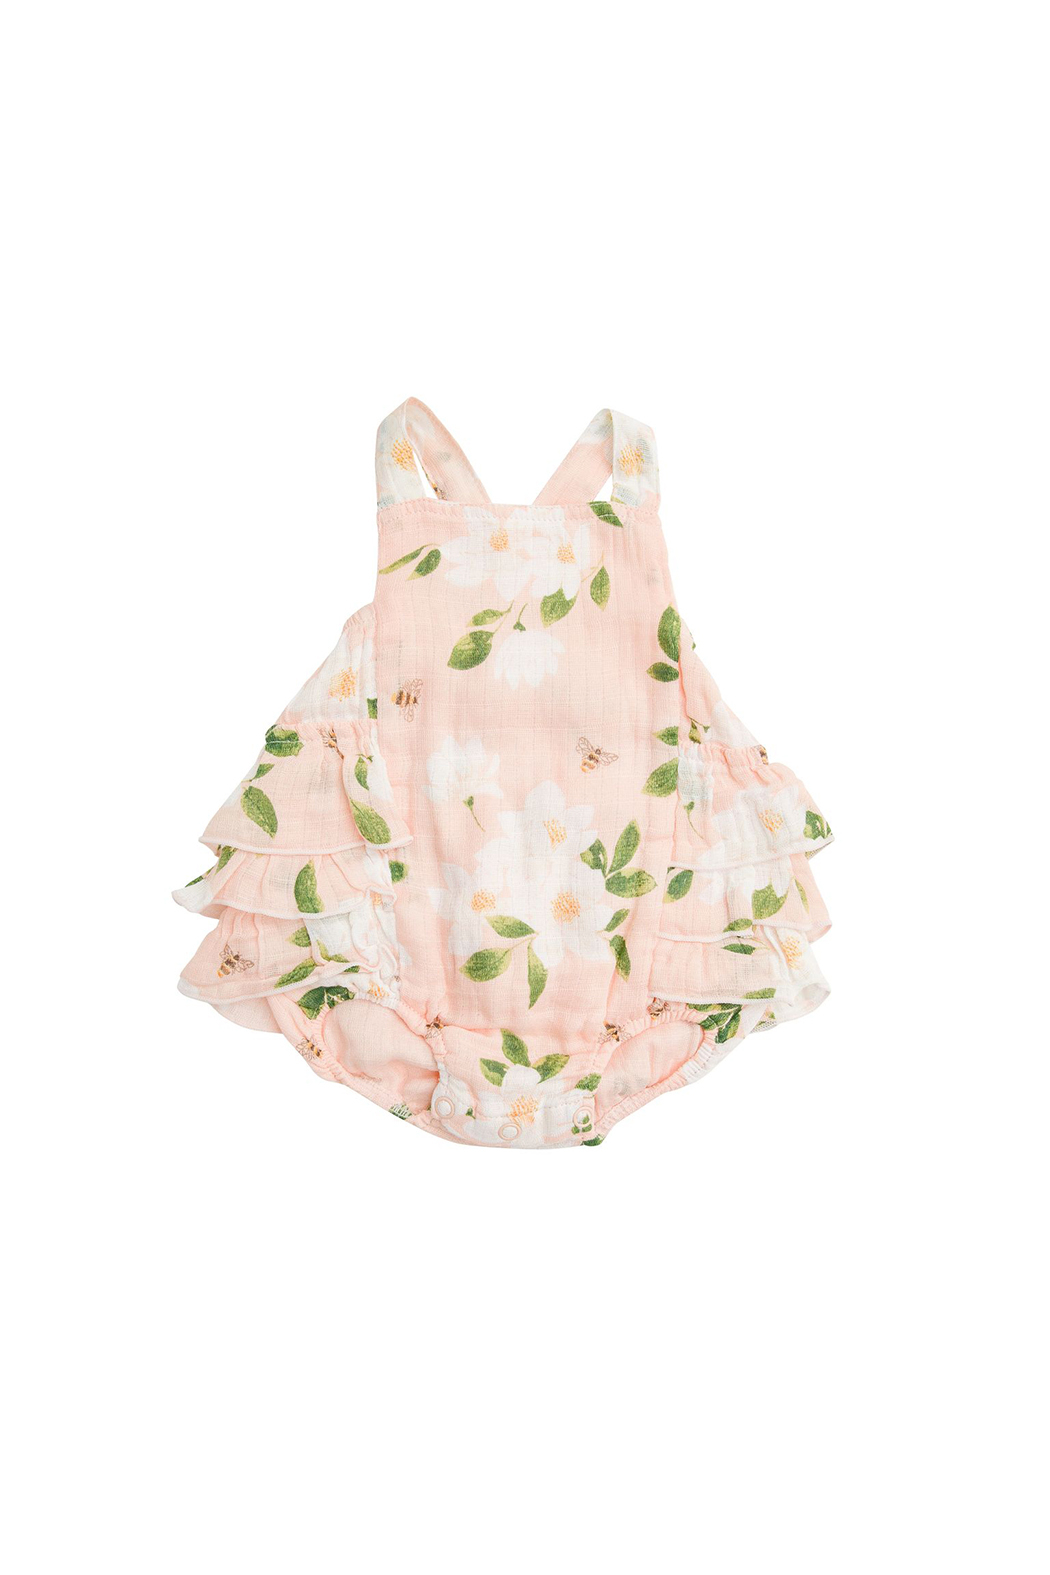 Angel Dear Magnolia Muslin Ruffle Sunsuit - Front Cropped Image